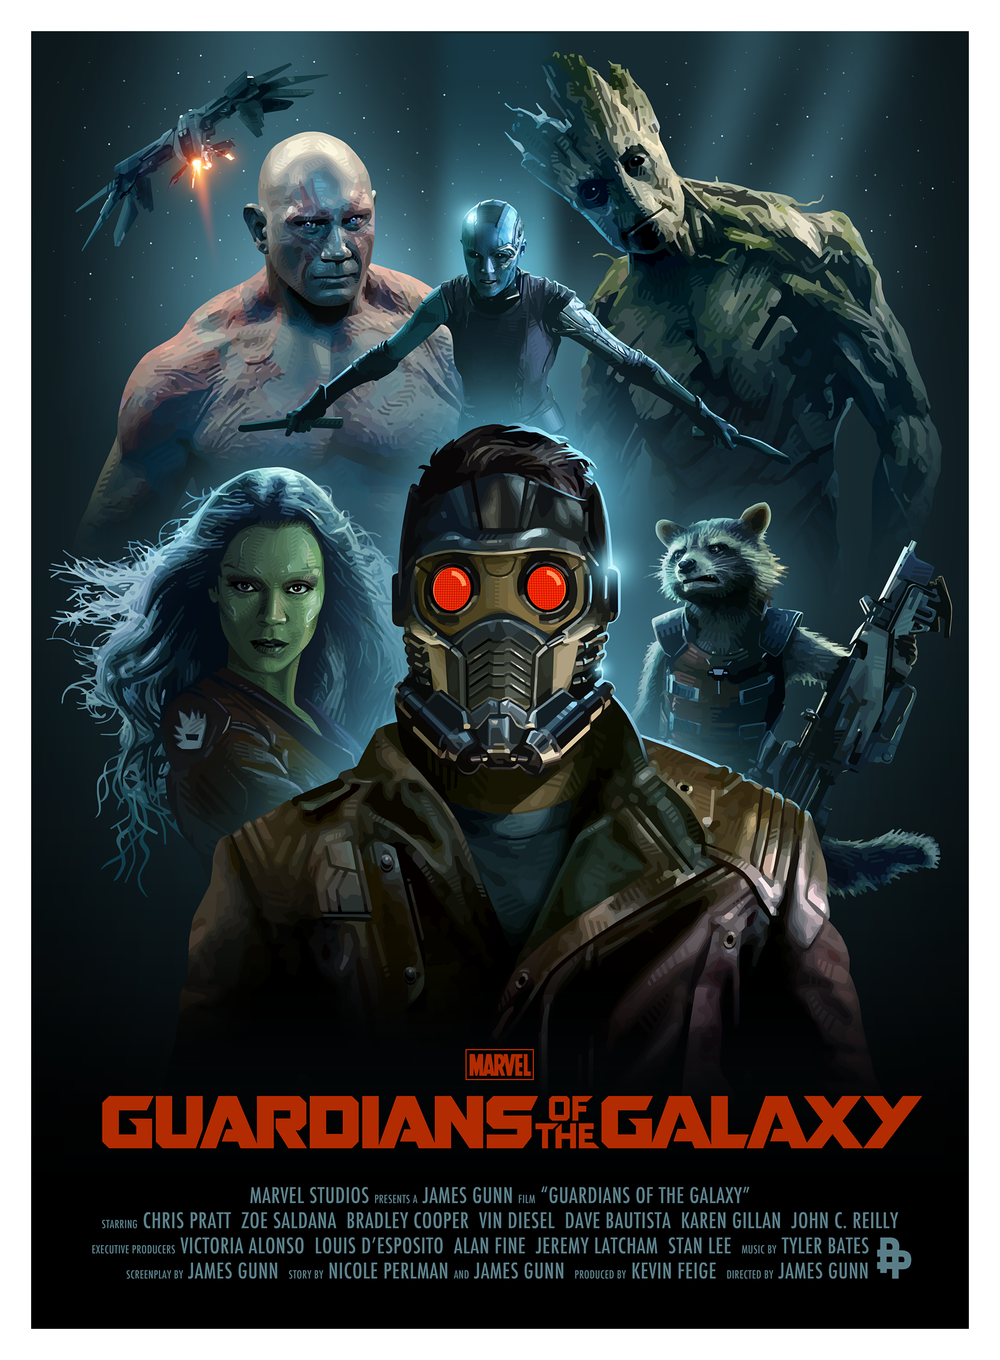 GeekTyrant                GUARDIANS OF THE GALAXY Poster Art Series from the Poster Posse